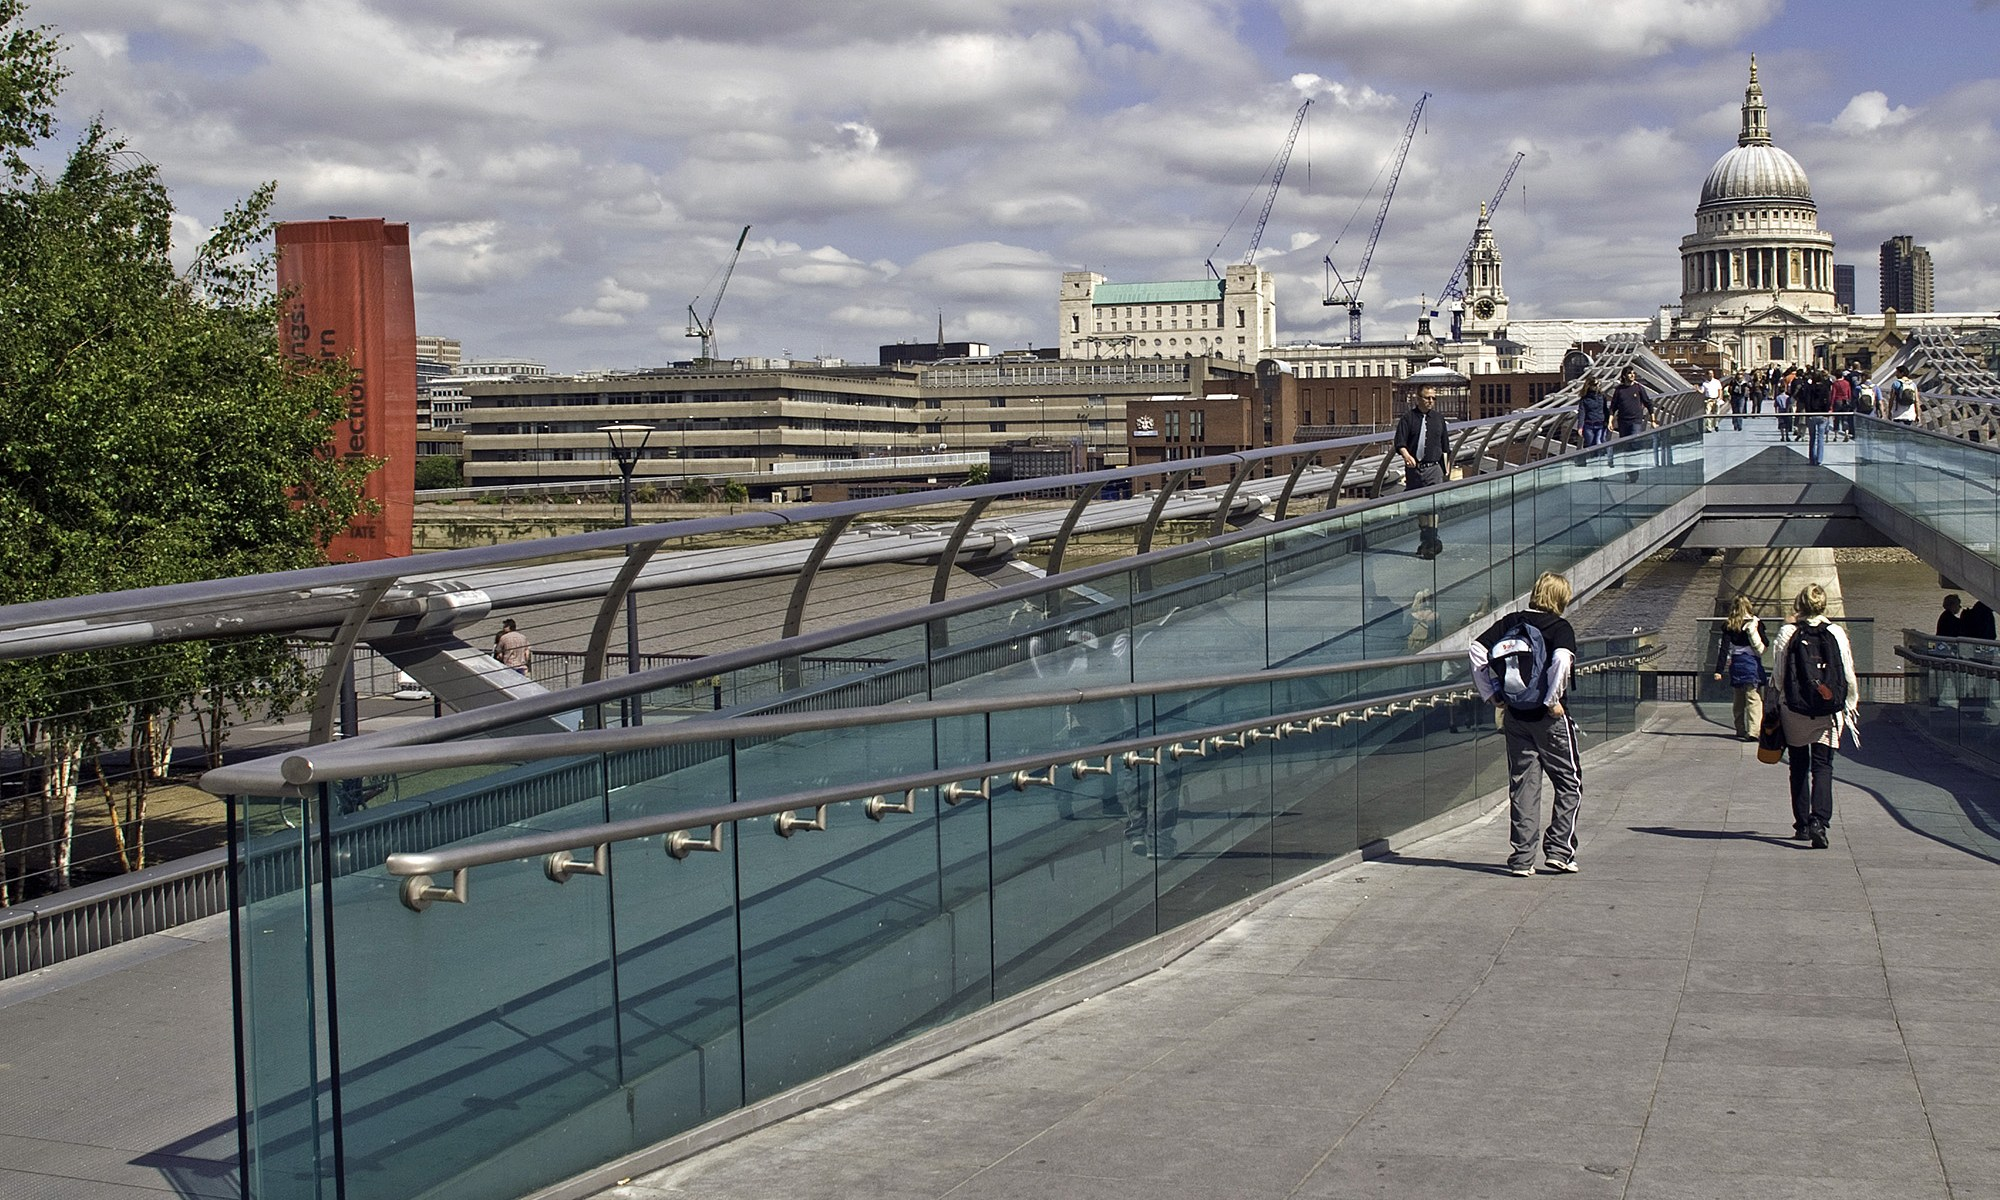 Millenium Bridge Walkway, London